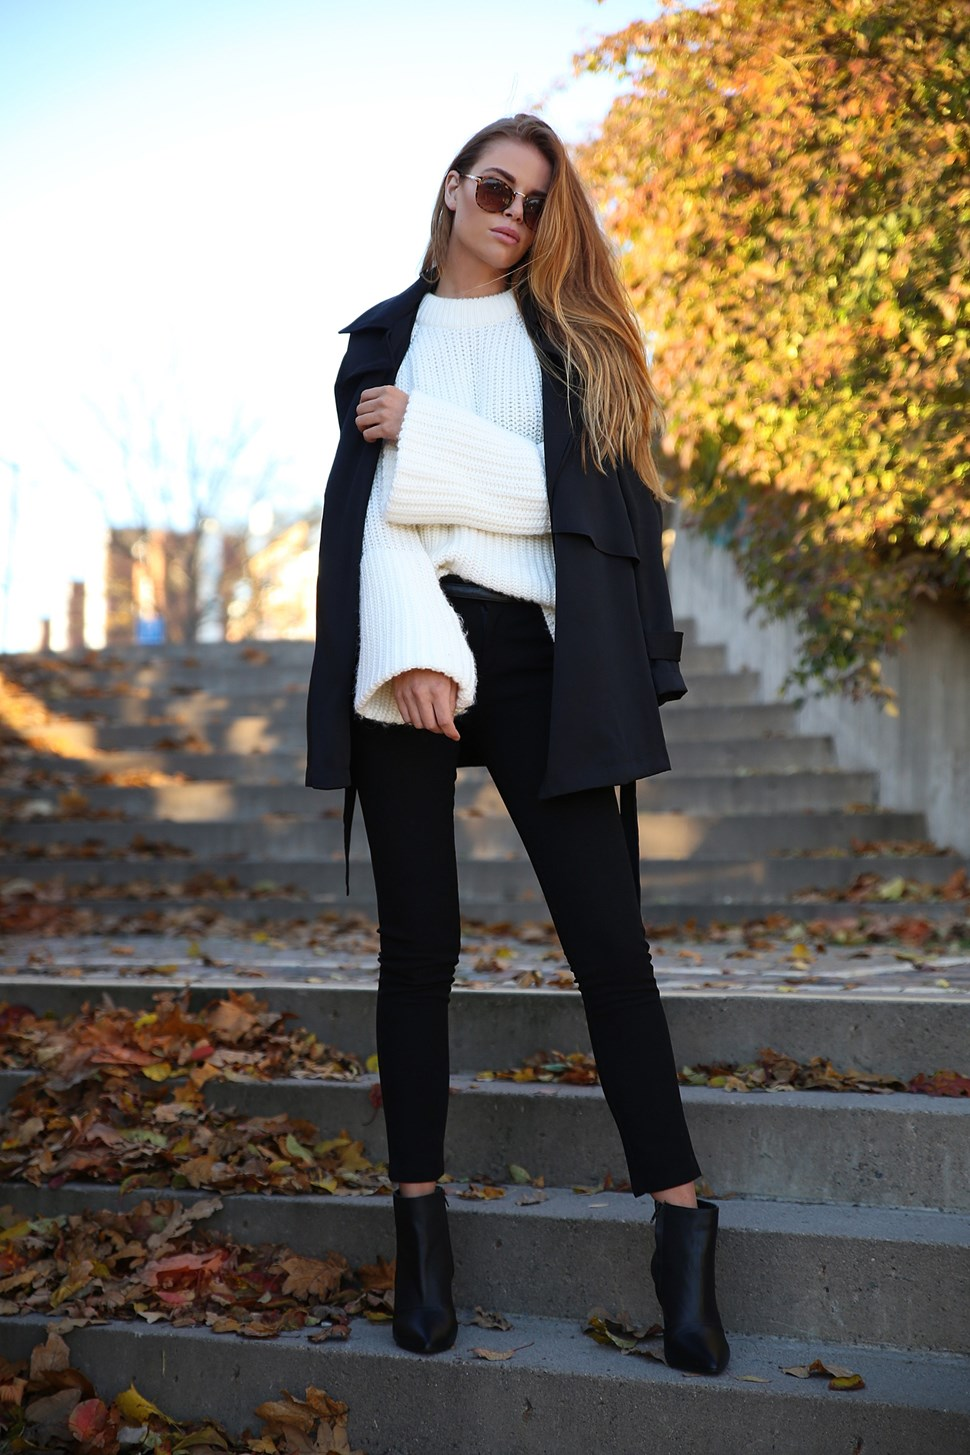 Josefin Ekström rocks monochrome in a white knit sweater with tight black trousers and Chelsea boots. Knit Sweater: Gina Tricot, Trousers: OOTD Store.